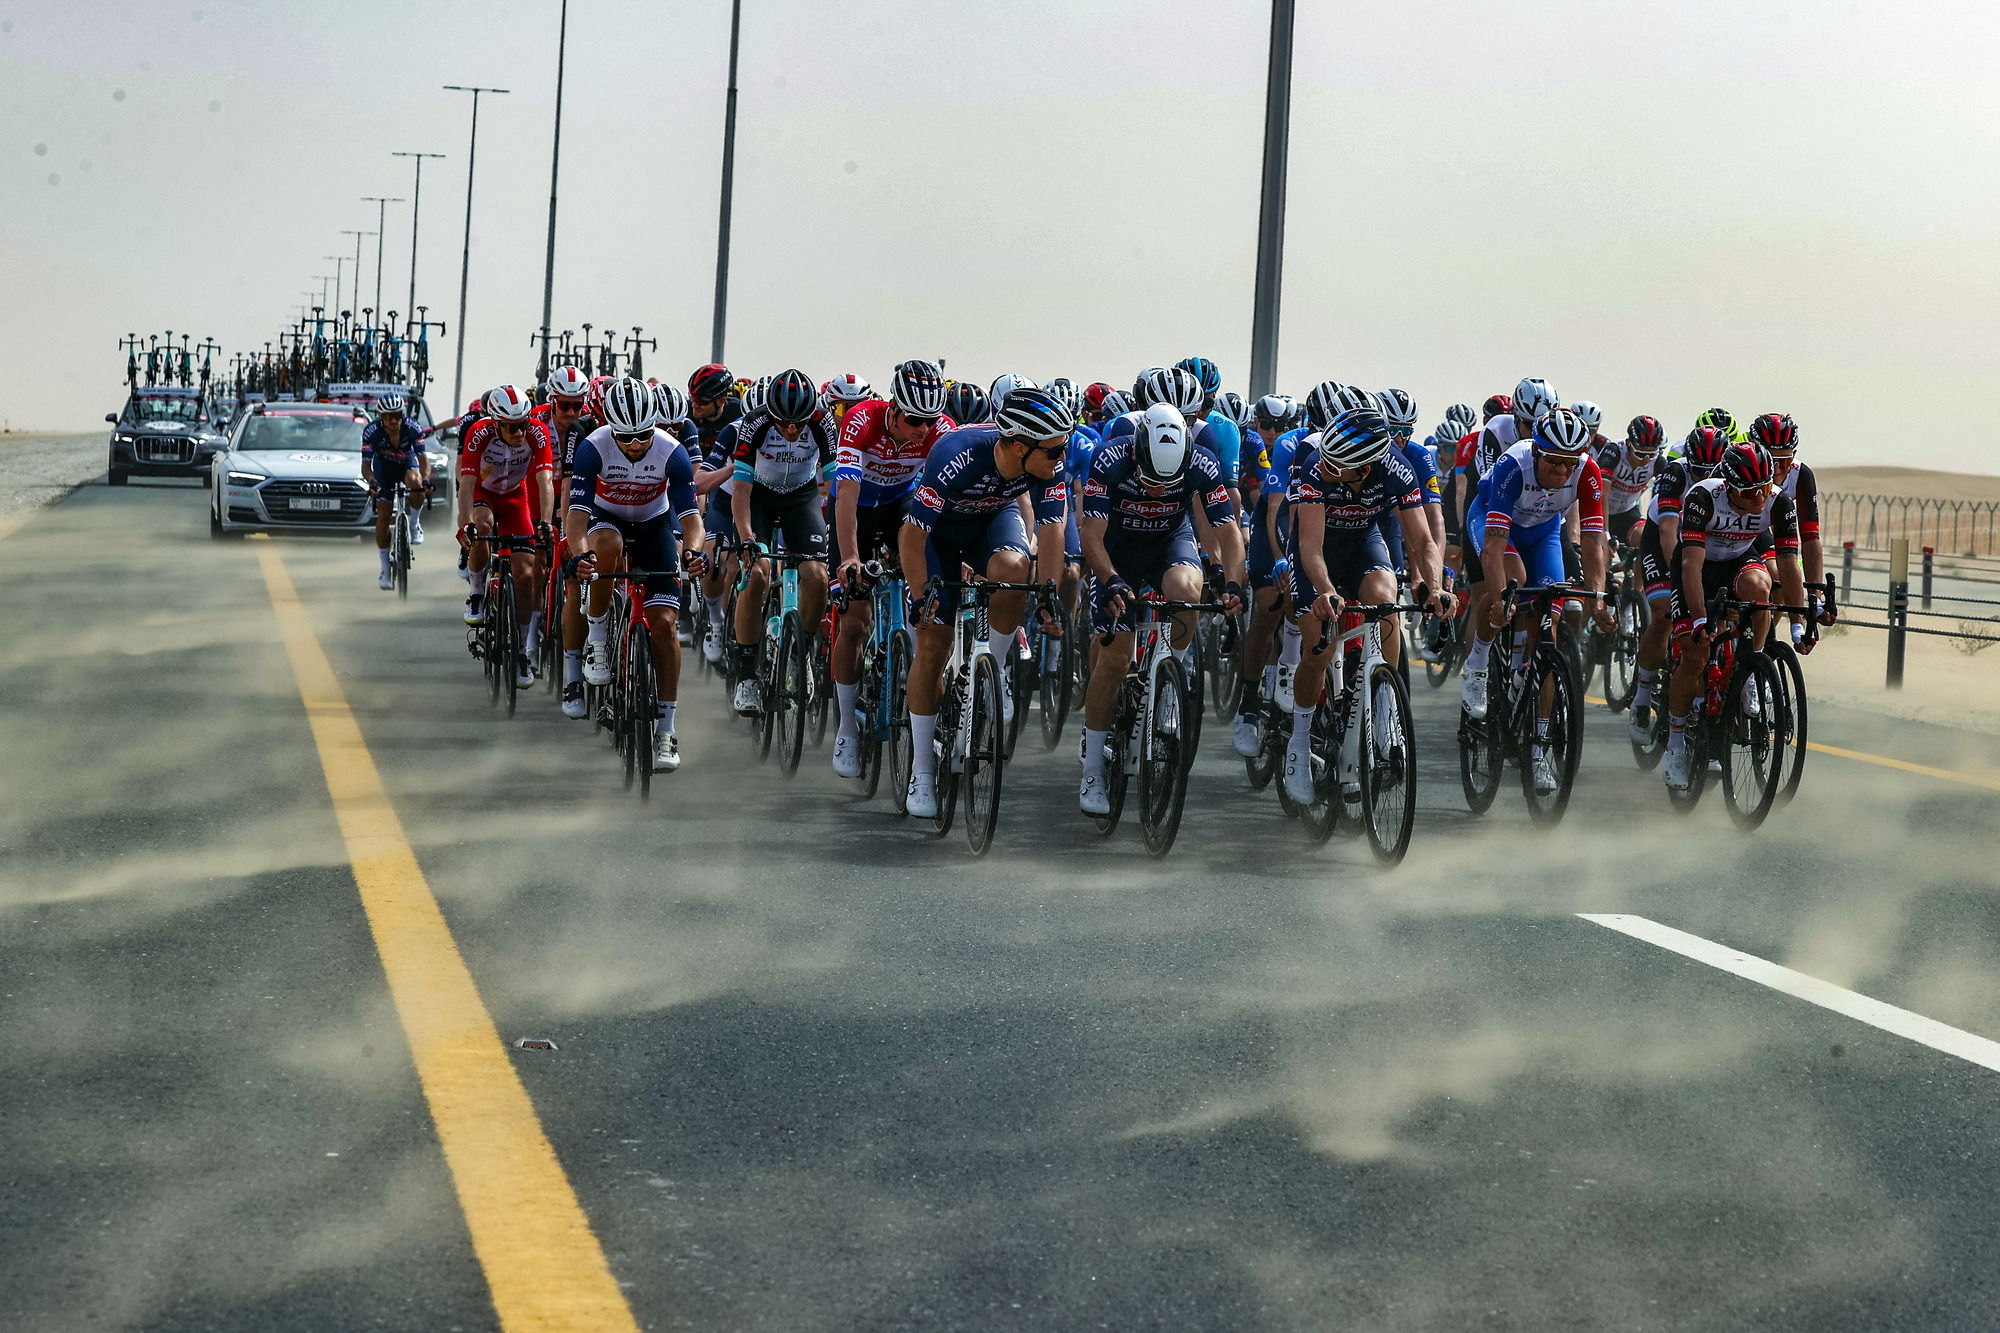 The desert winds at the UAE Tour blew sand across the road